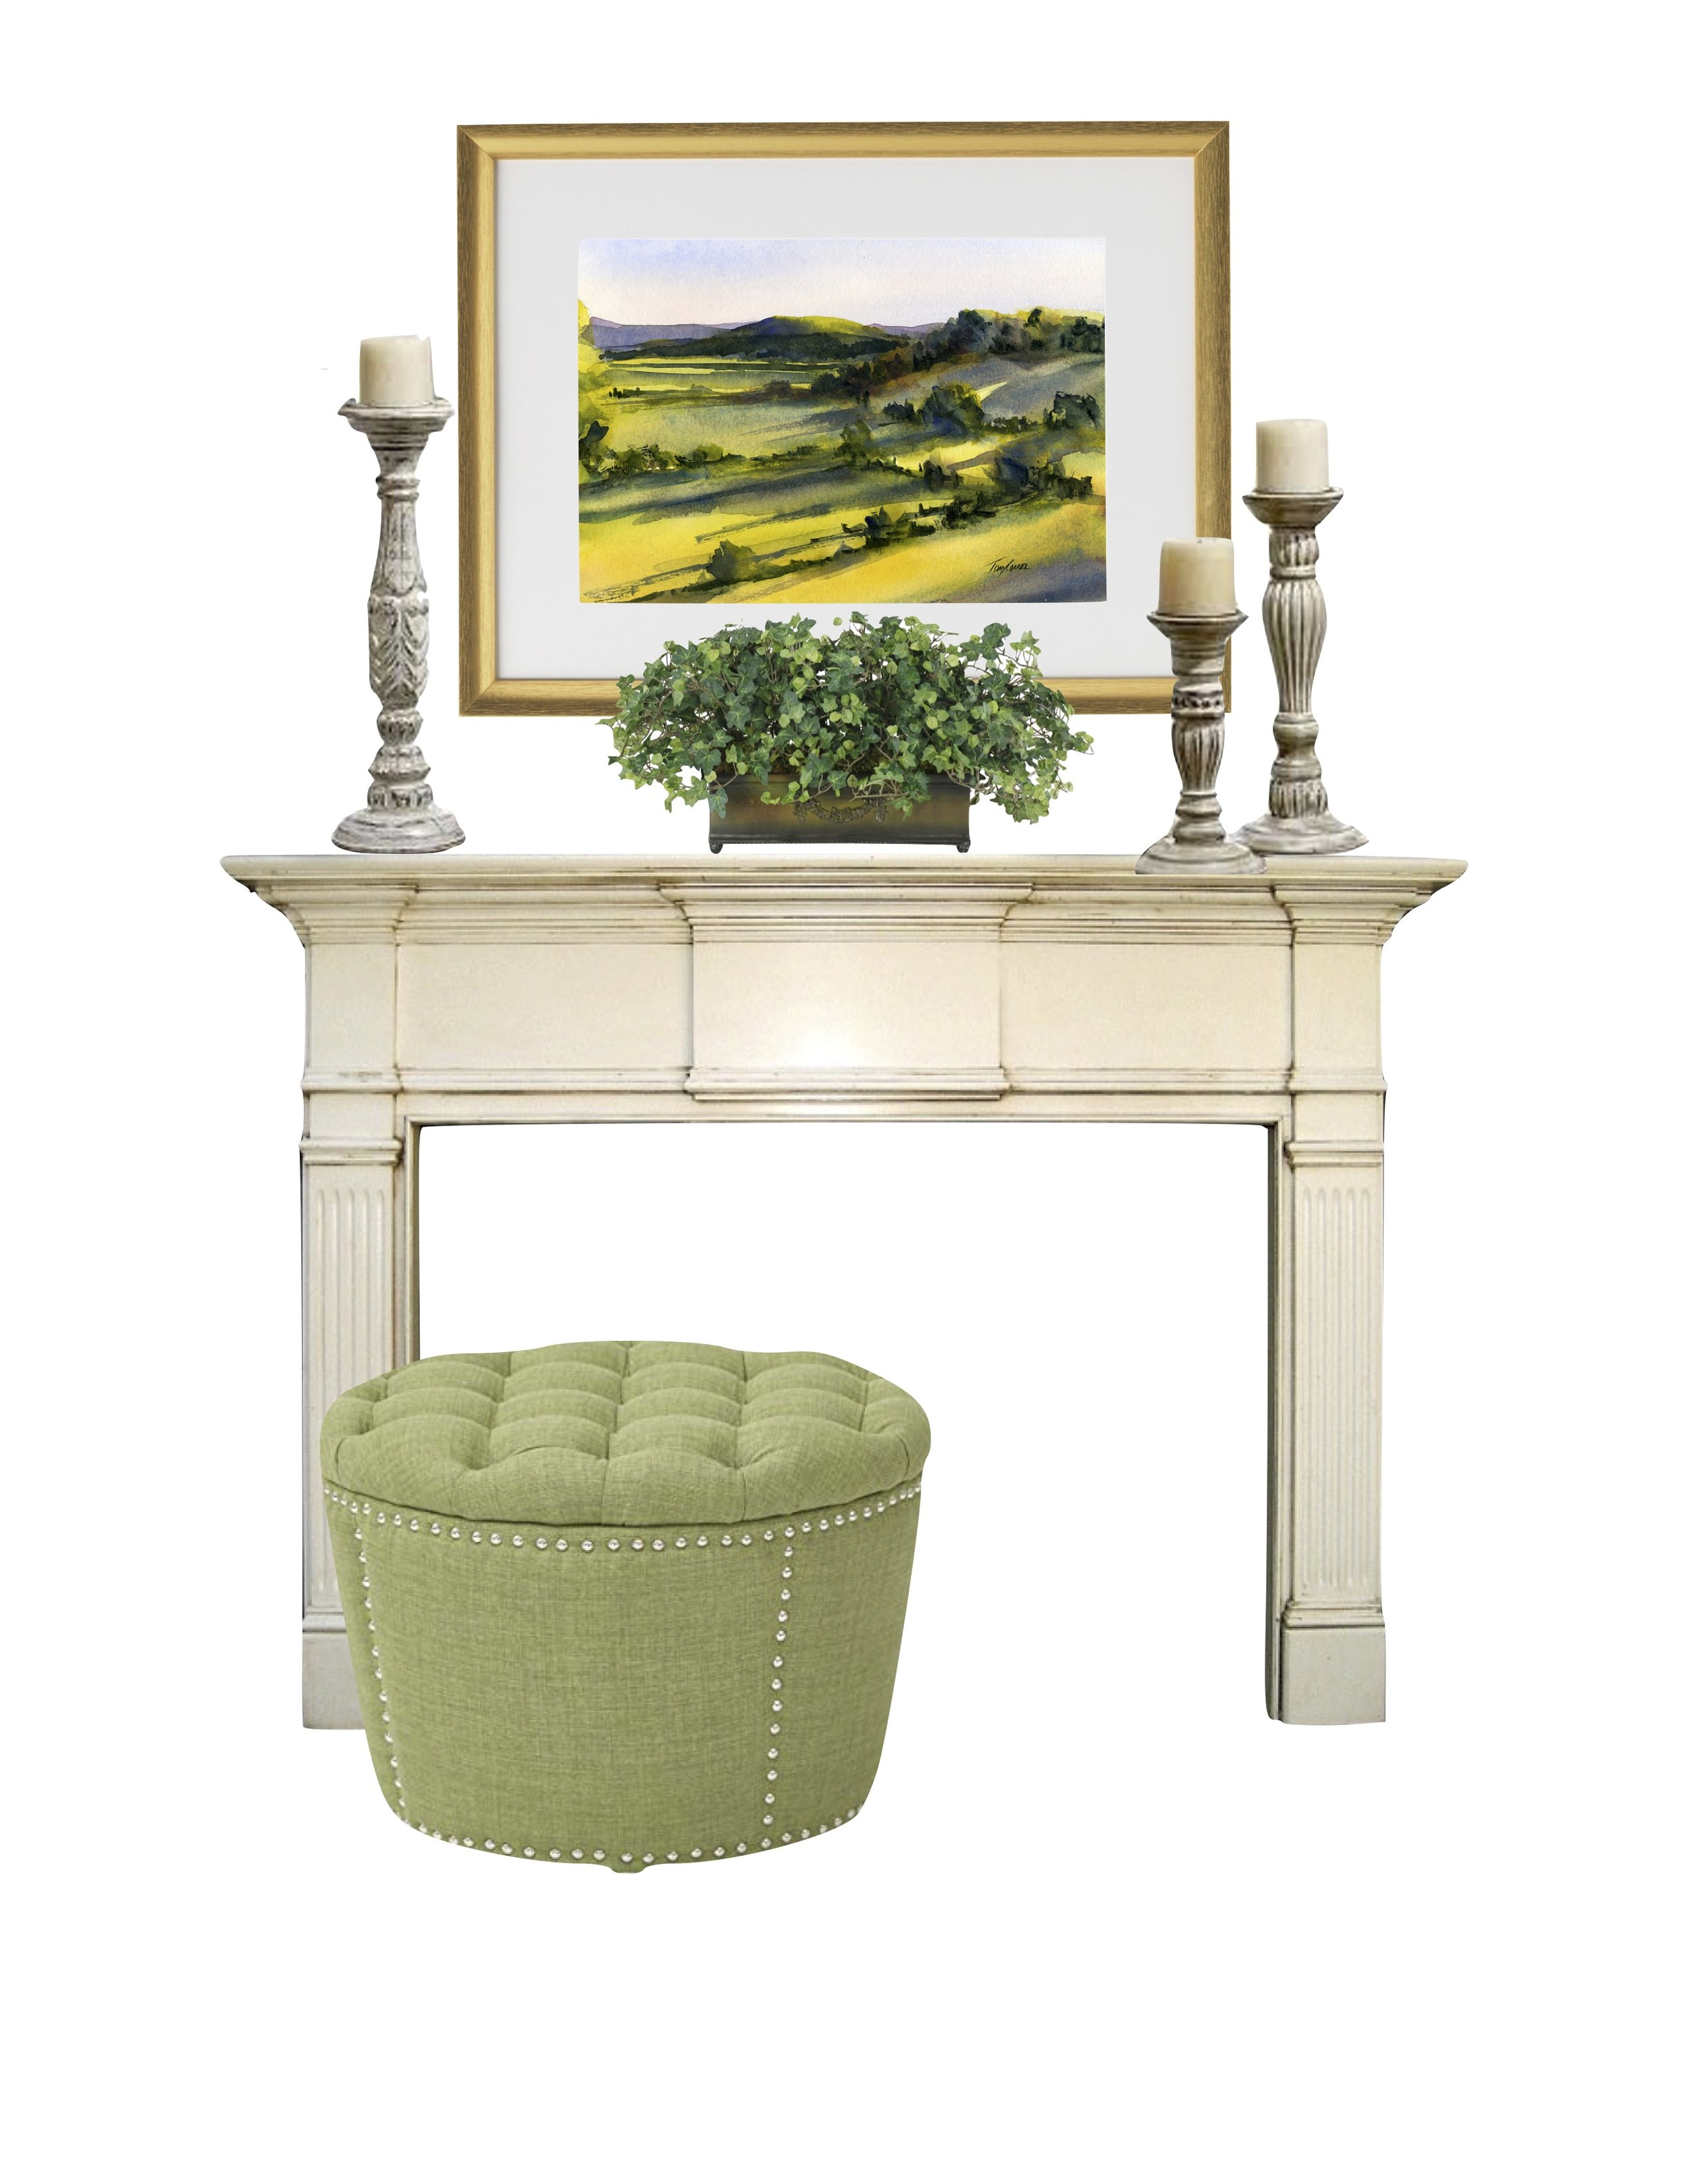 Artwork   |   Planter   |   Ottoman   |   Similar Candlesticks